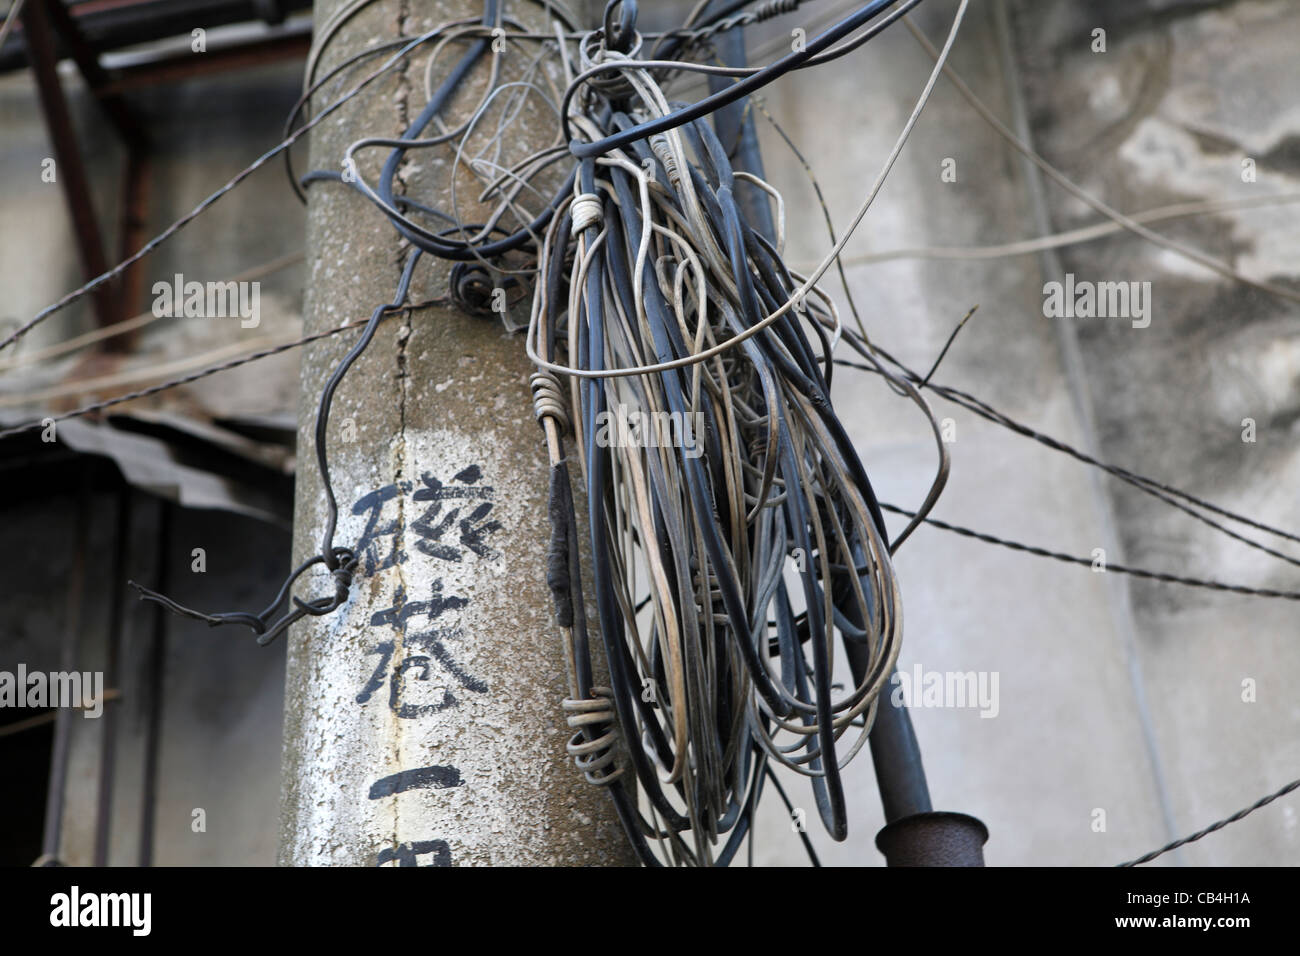 unsafe electrical wiring stock photos unsafe electrical wiring rh alamy com Unsafe Electrical Lab Setup Unsafe Electrical Panel